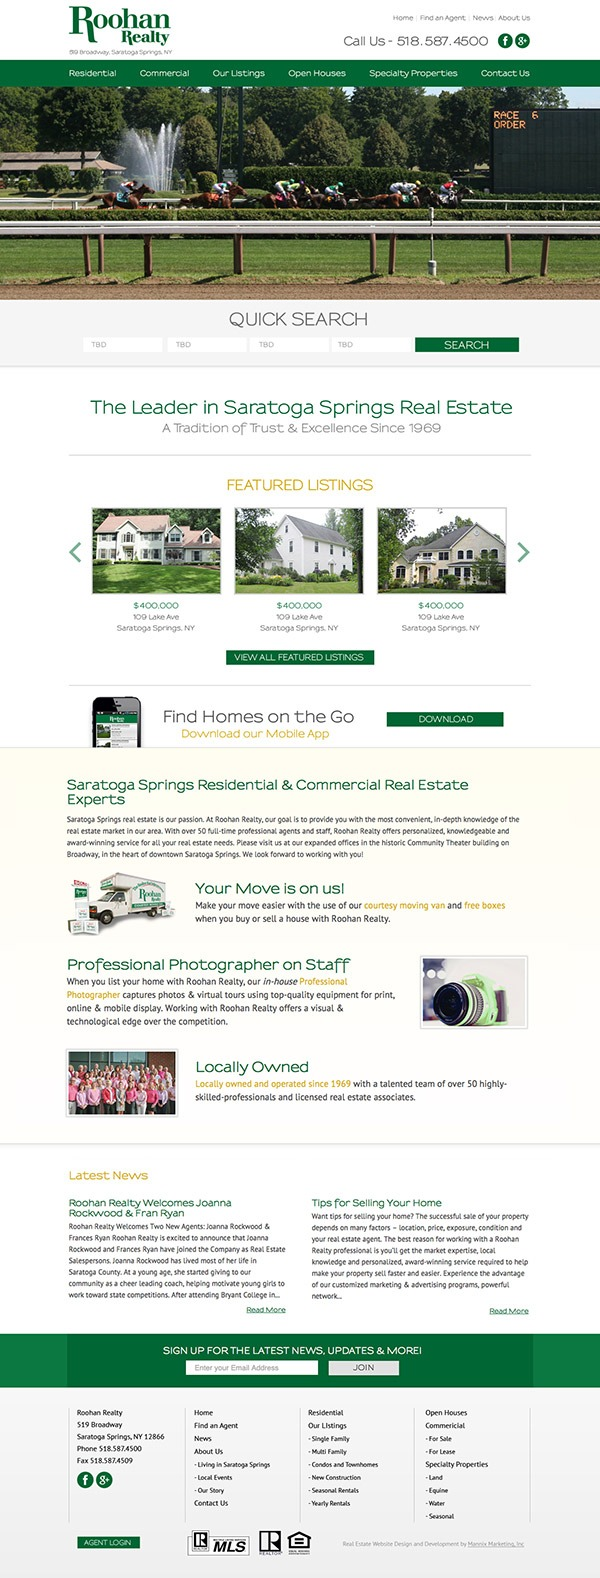 Roohan Realty Website Design and Development